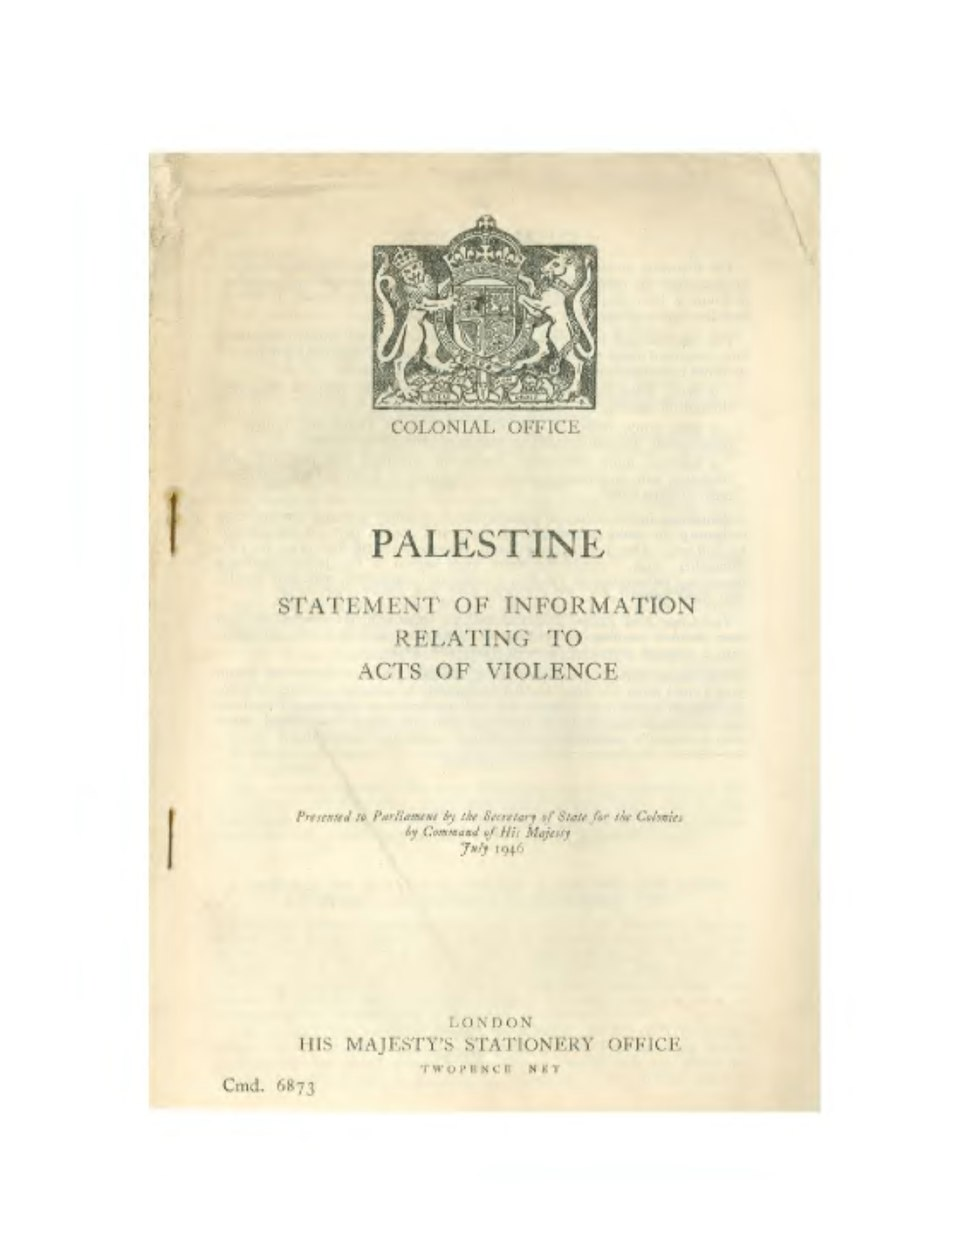 Palestine Statement of Information Relating to Acts of Violence Presented to Parliament by the Secretary of State for the Colonies by Command of His Majesty, July 1946.djvu